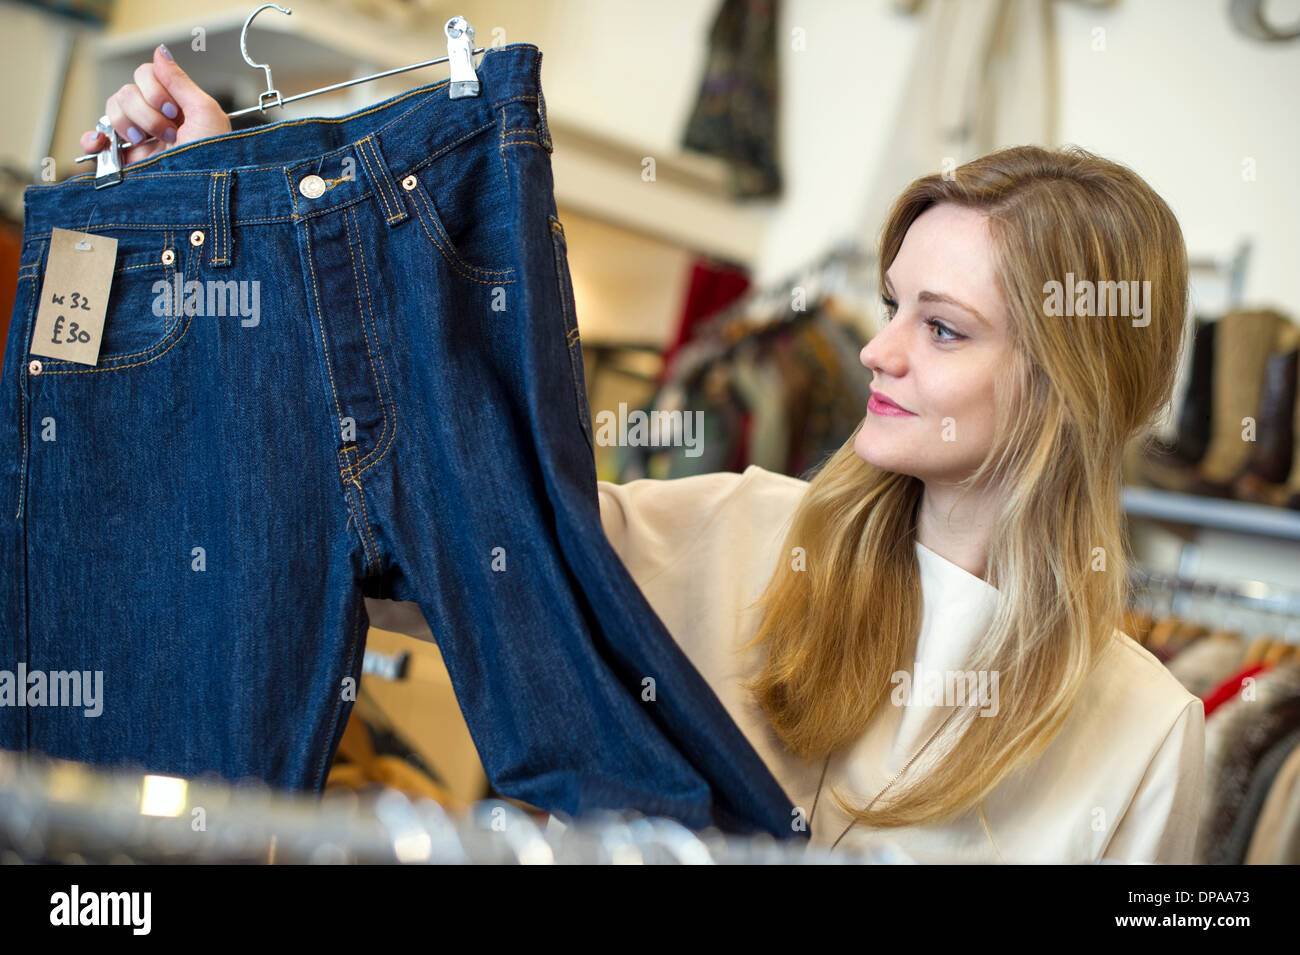 Woman looking at pair of jeans - Stock Image